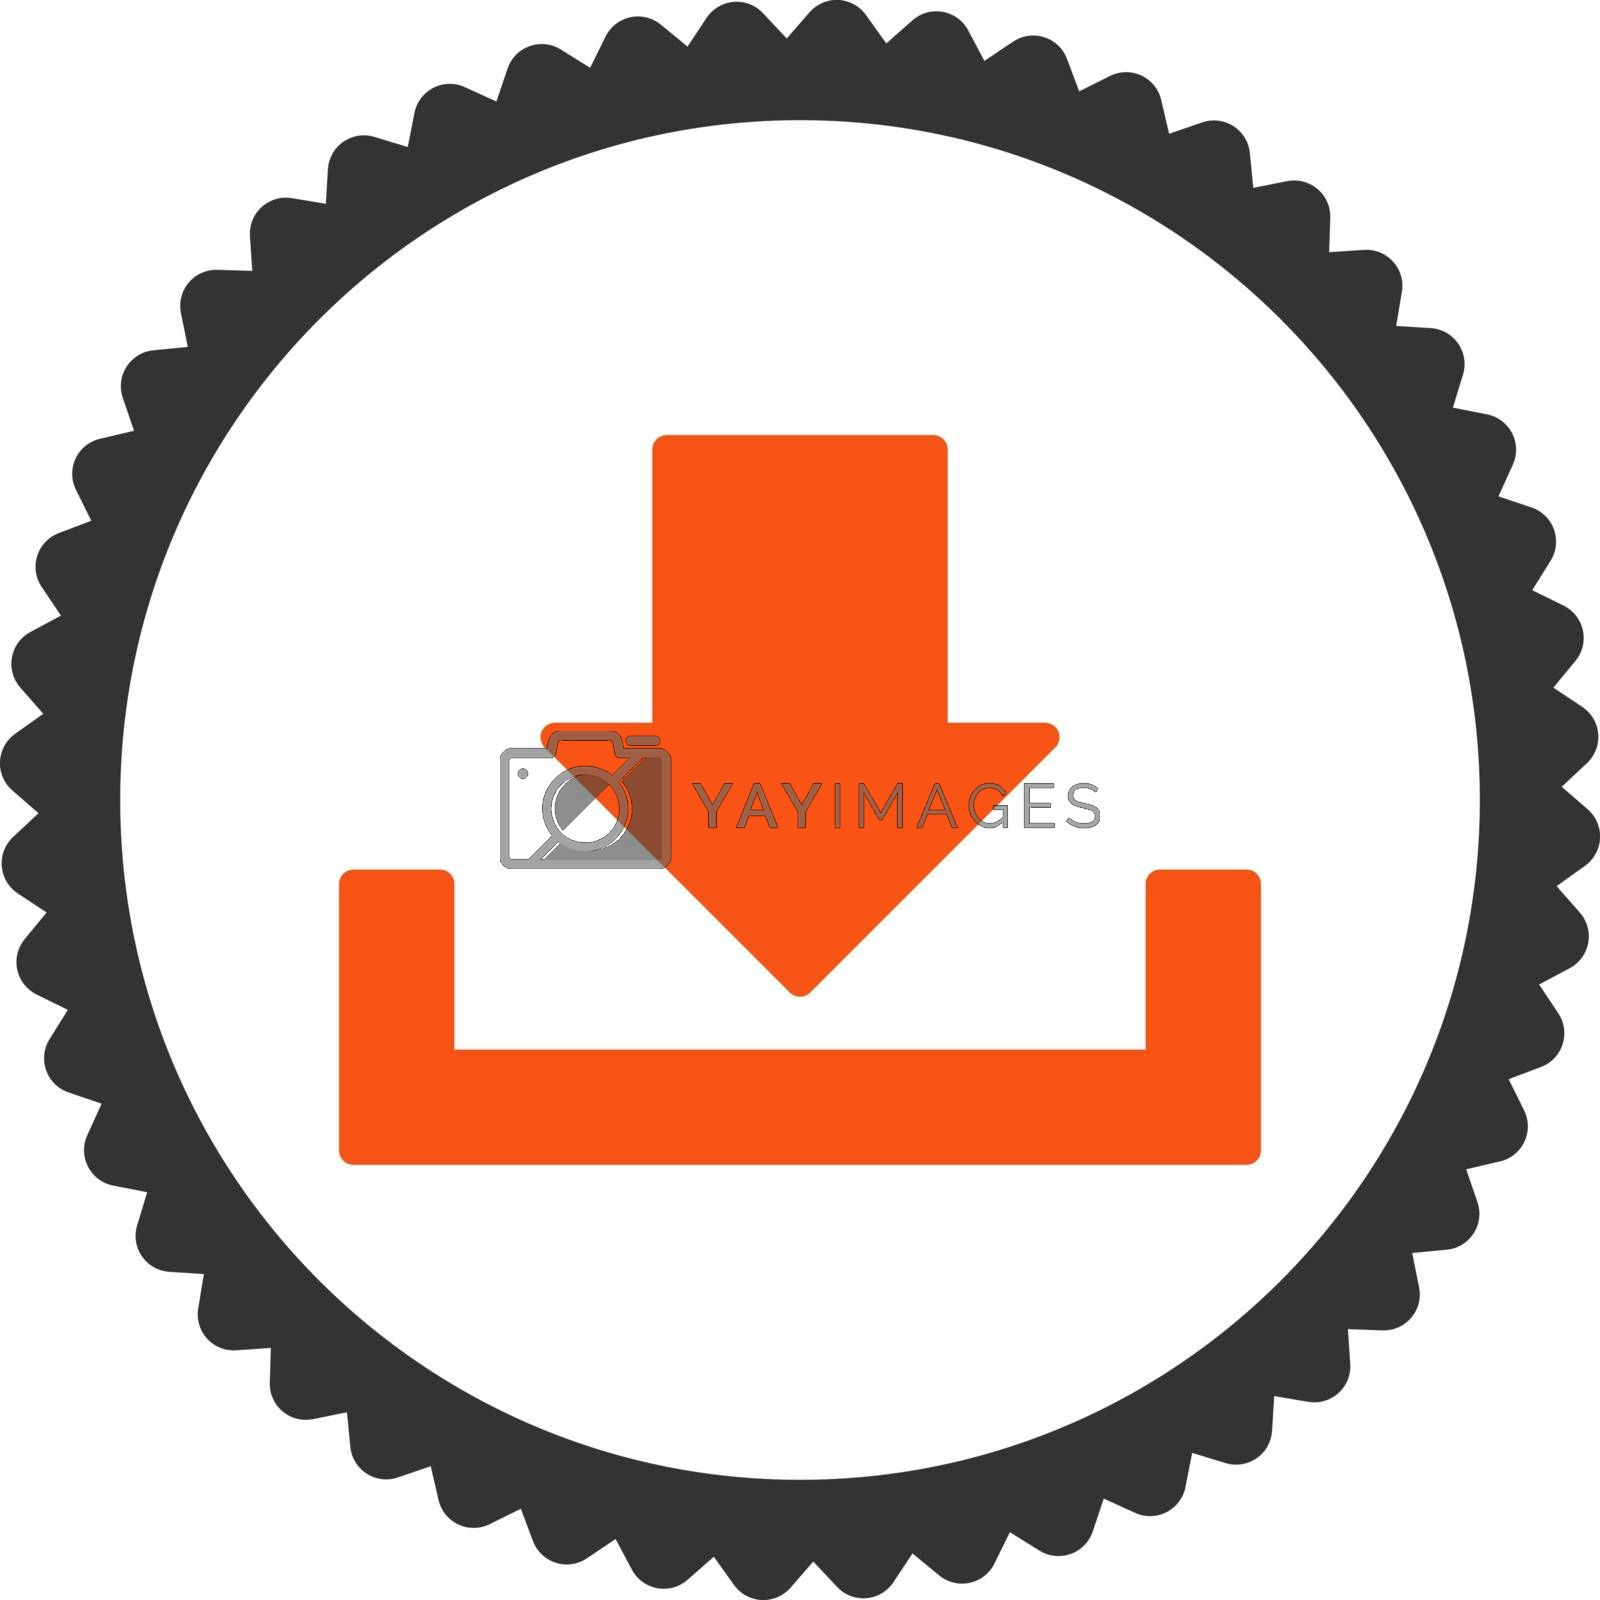 Download flat orange and gray colors round stamp icon by Aha-Soft